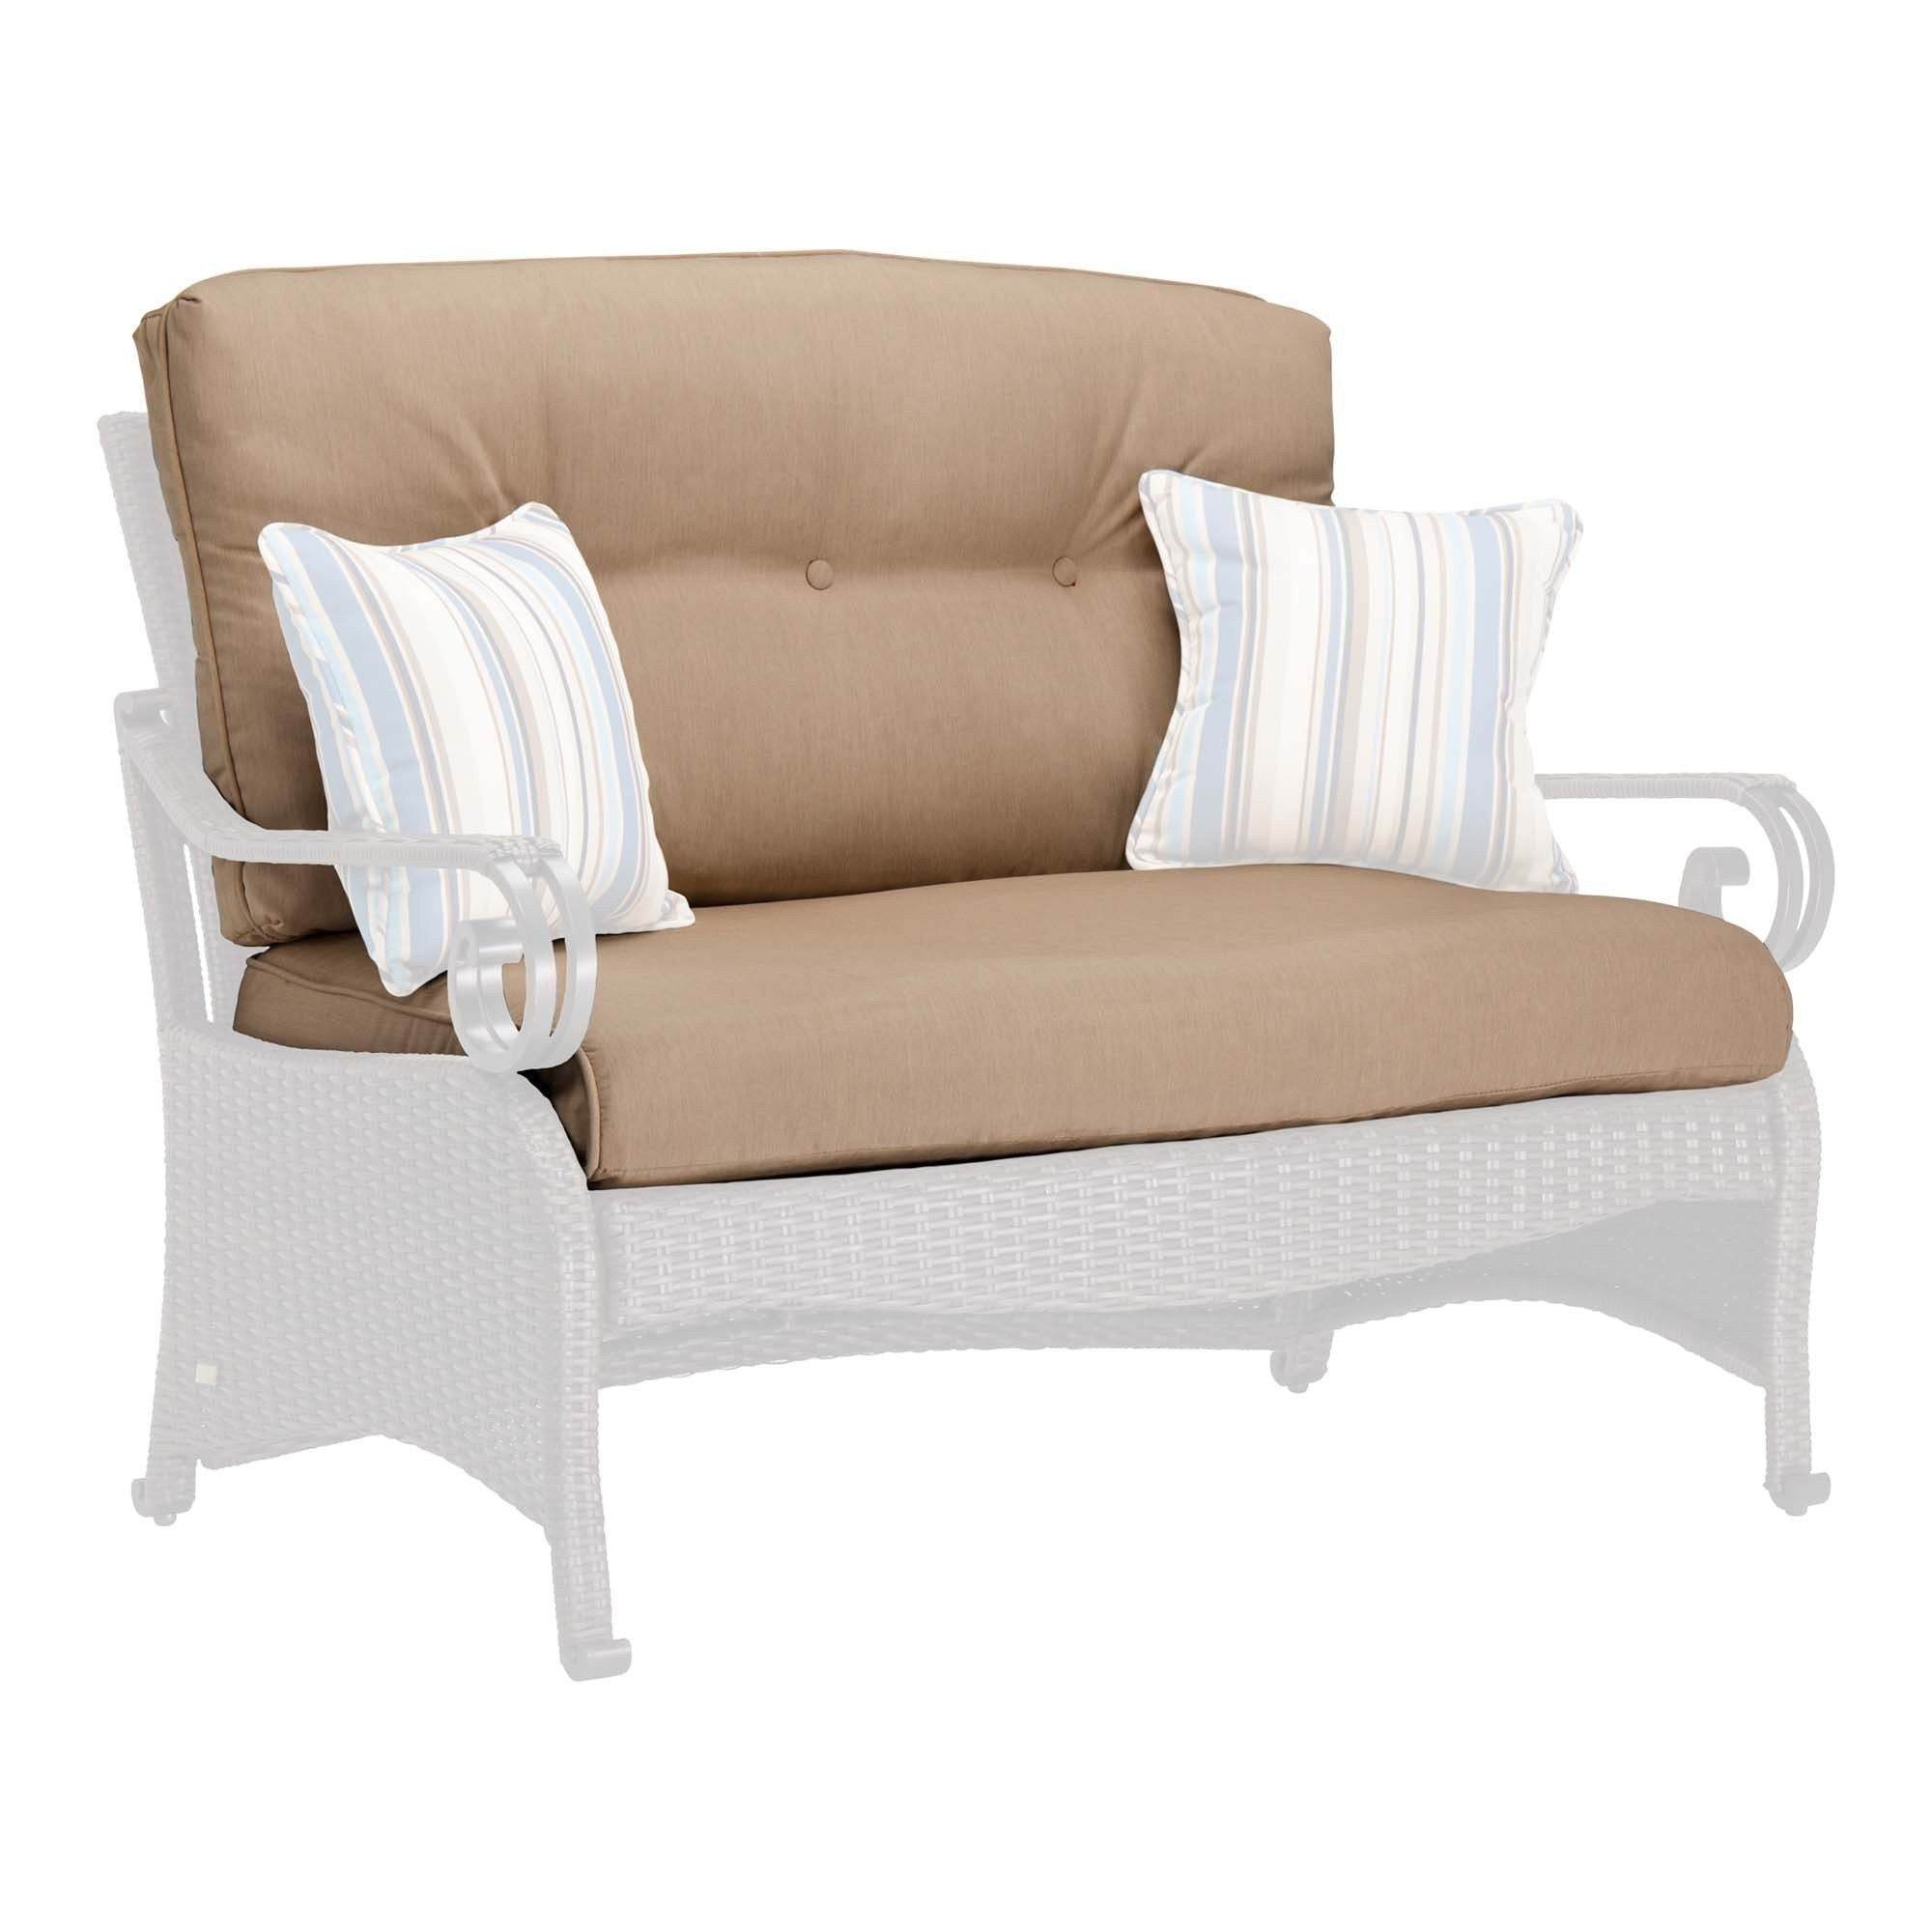 Patio loveseat wicker espresso finish patio loveseat with cushion and pillows garden furniture Patio loveseat cushion